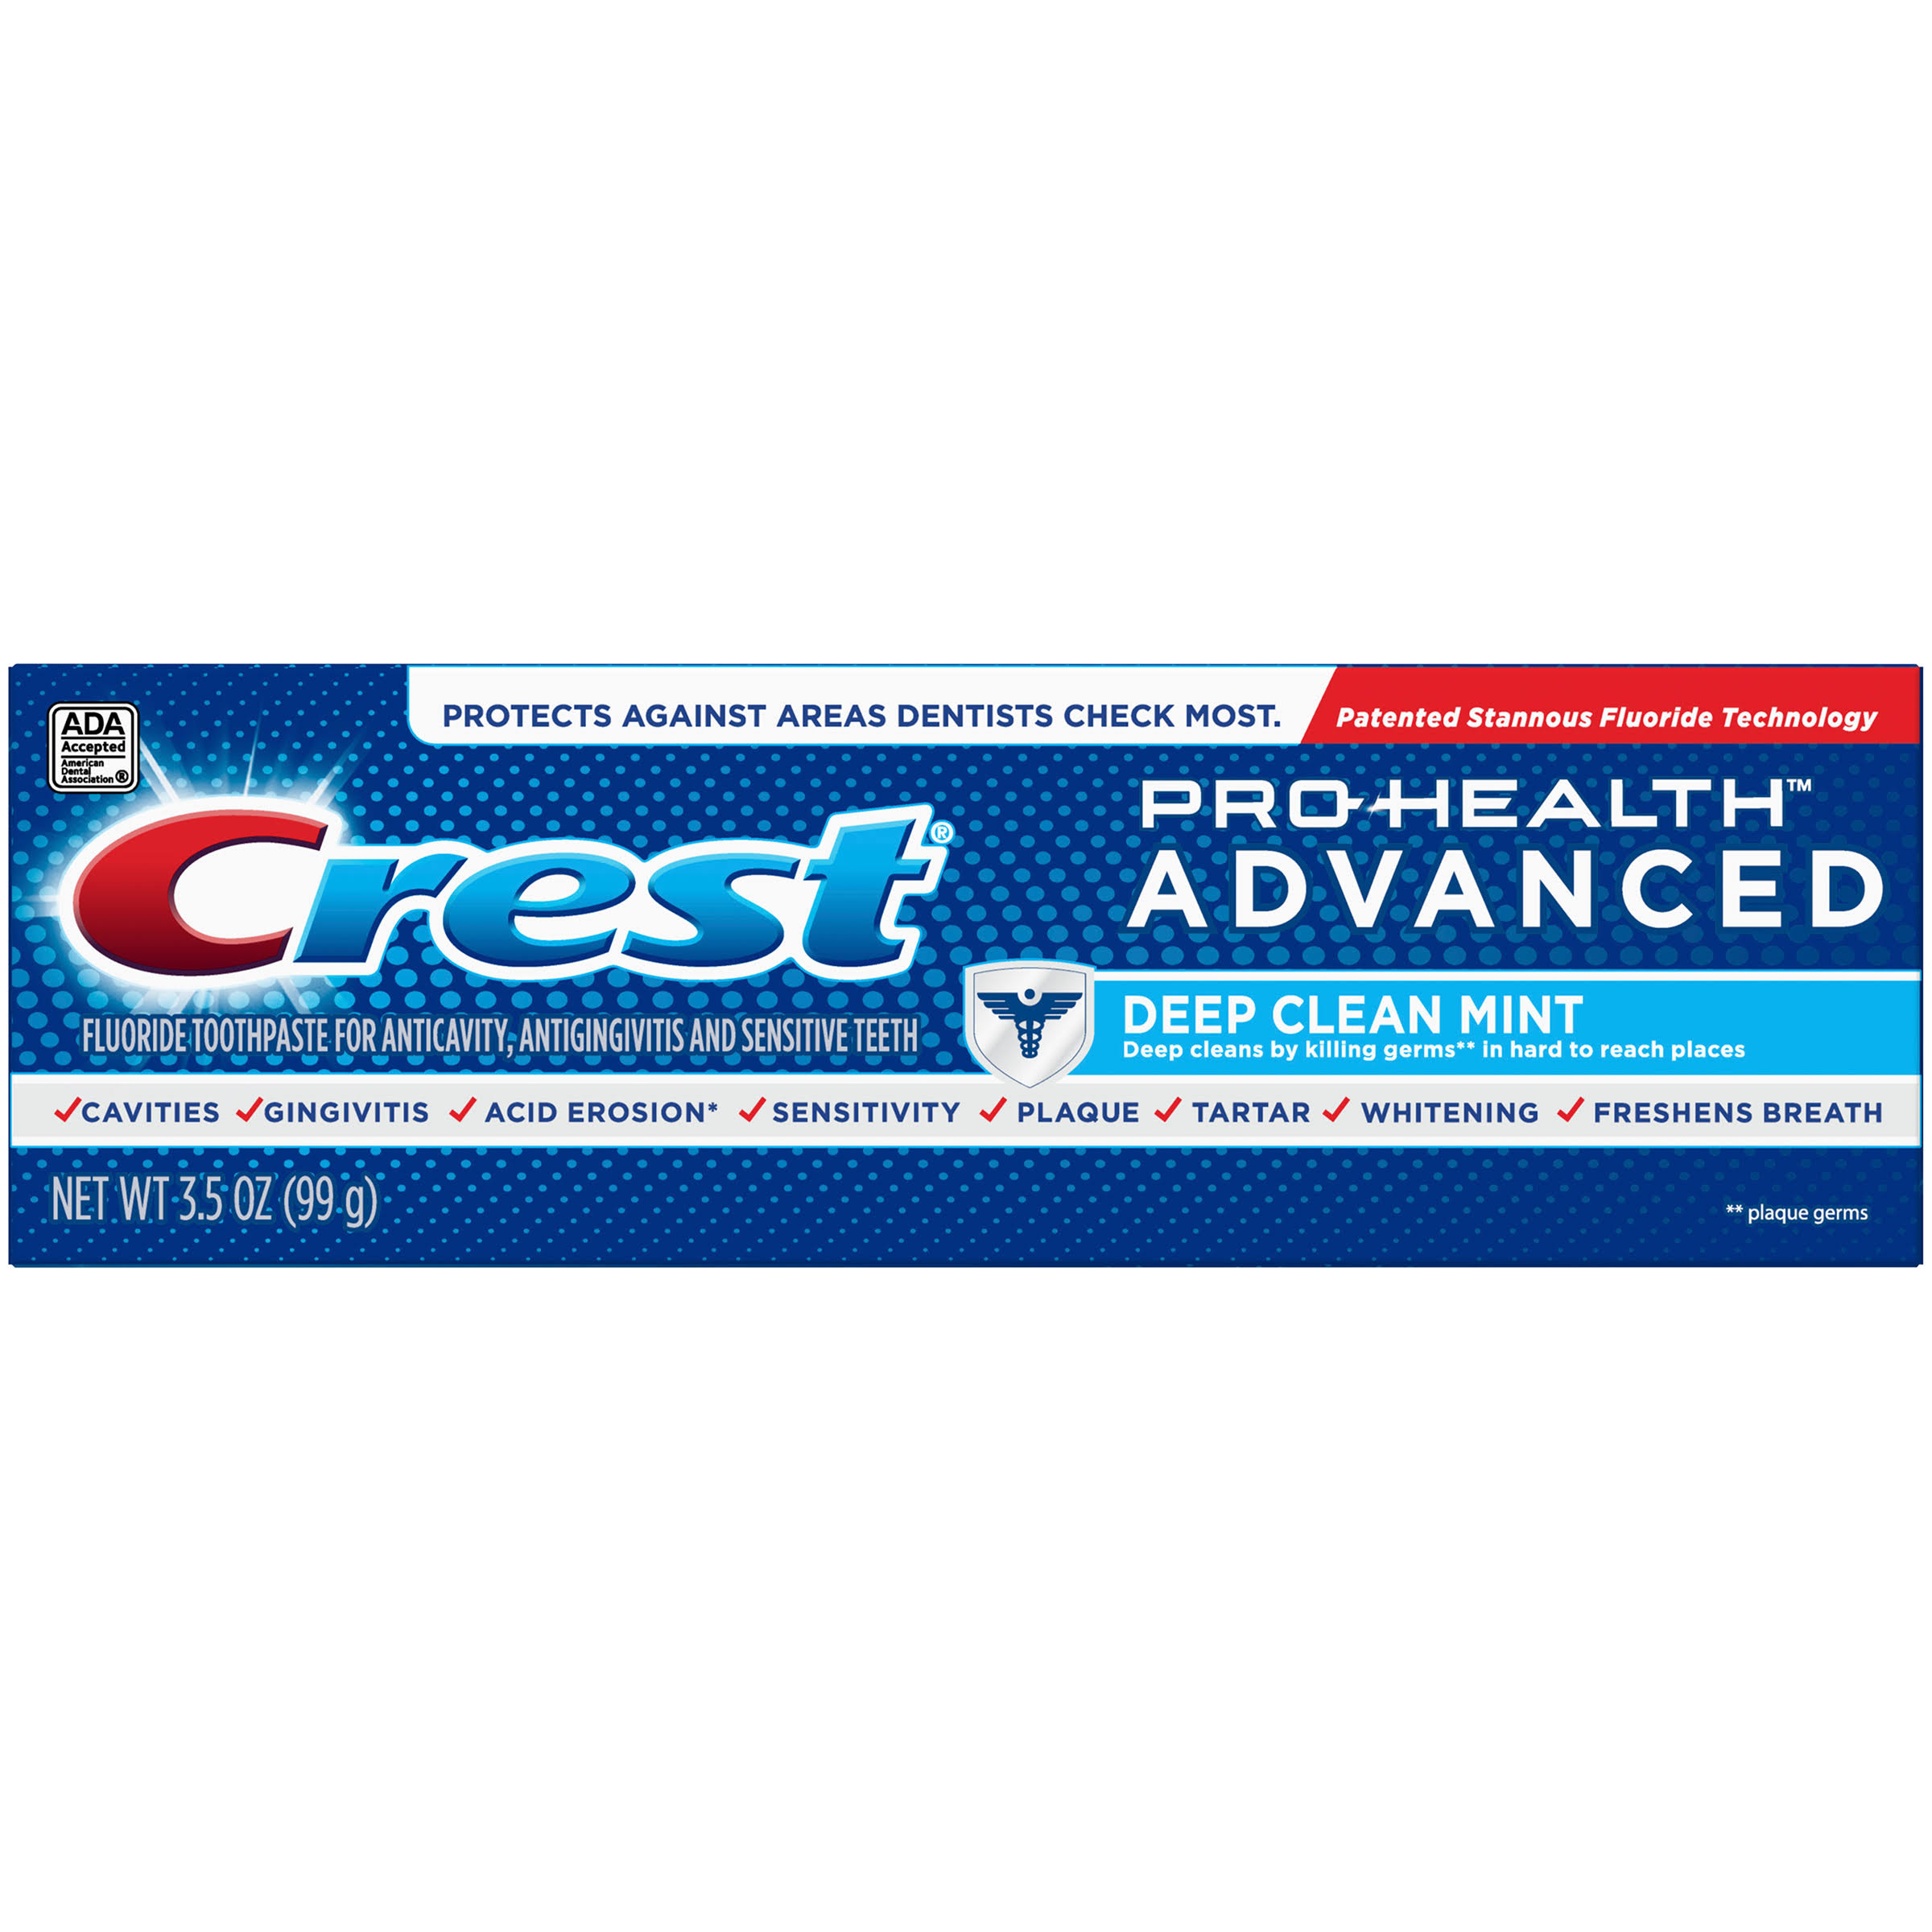 Crest Pro-Health Advanced Deep Clean Mint Fluoride Toothpaste - 3.5oz